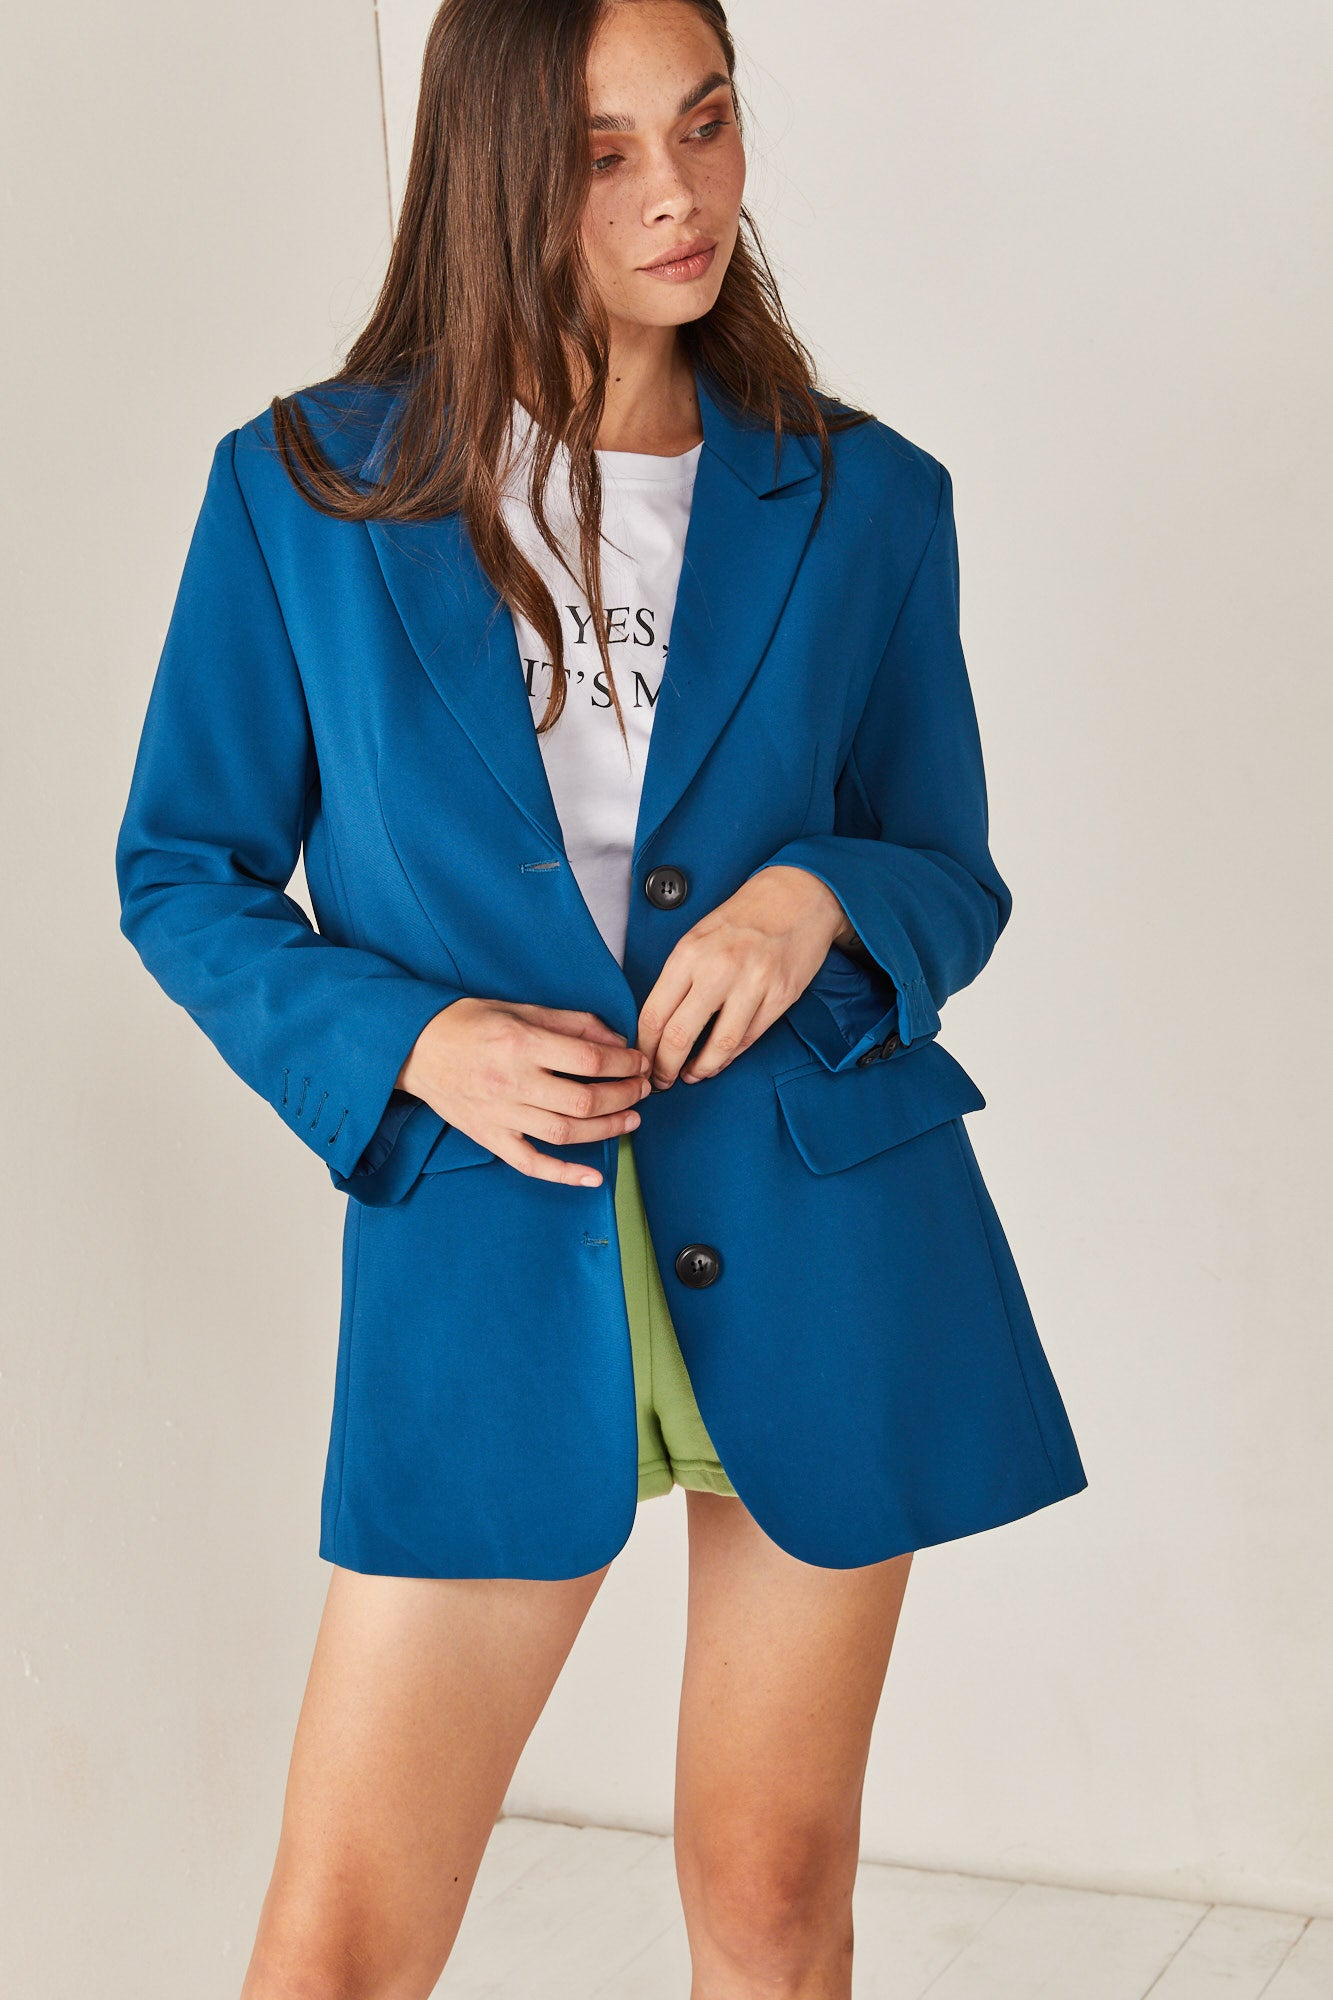 My Blue Blazer